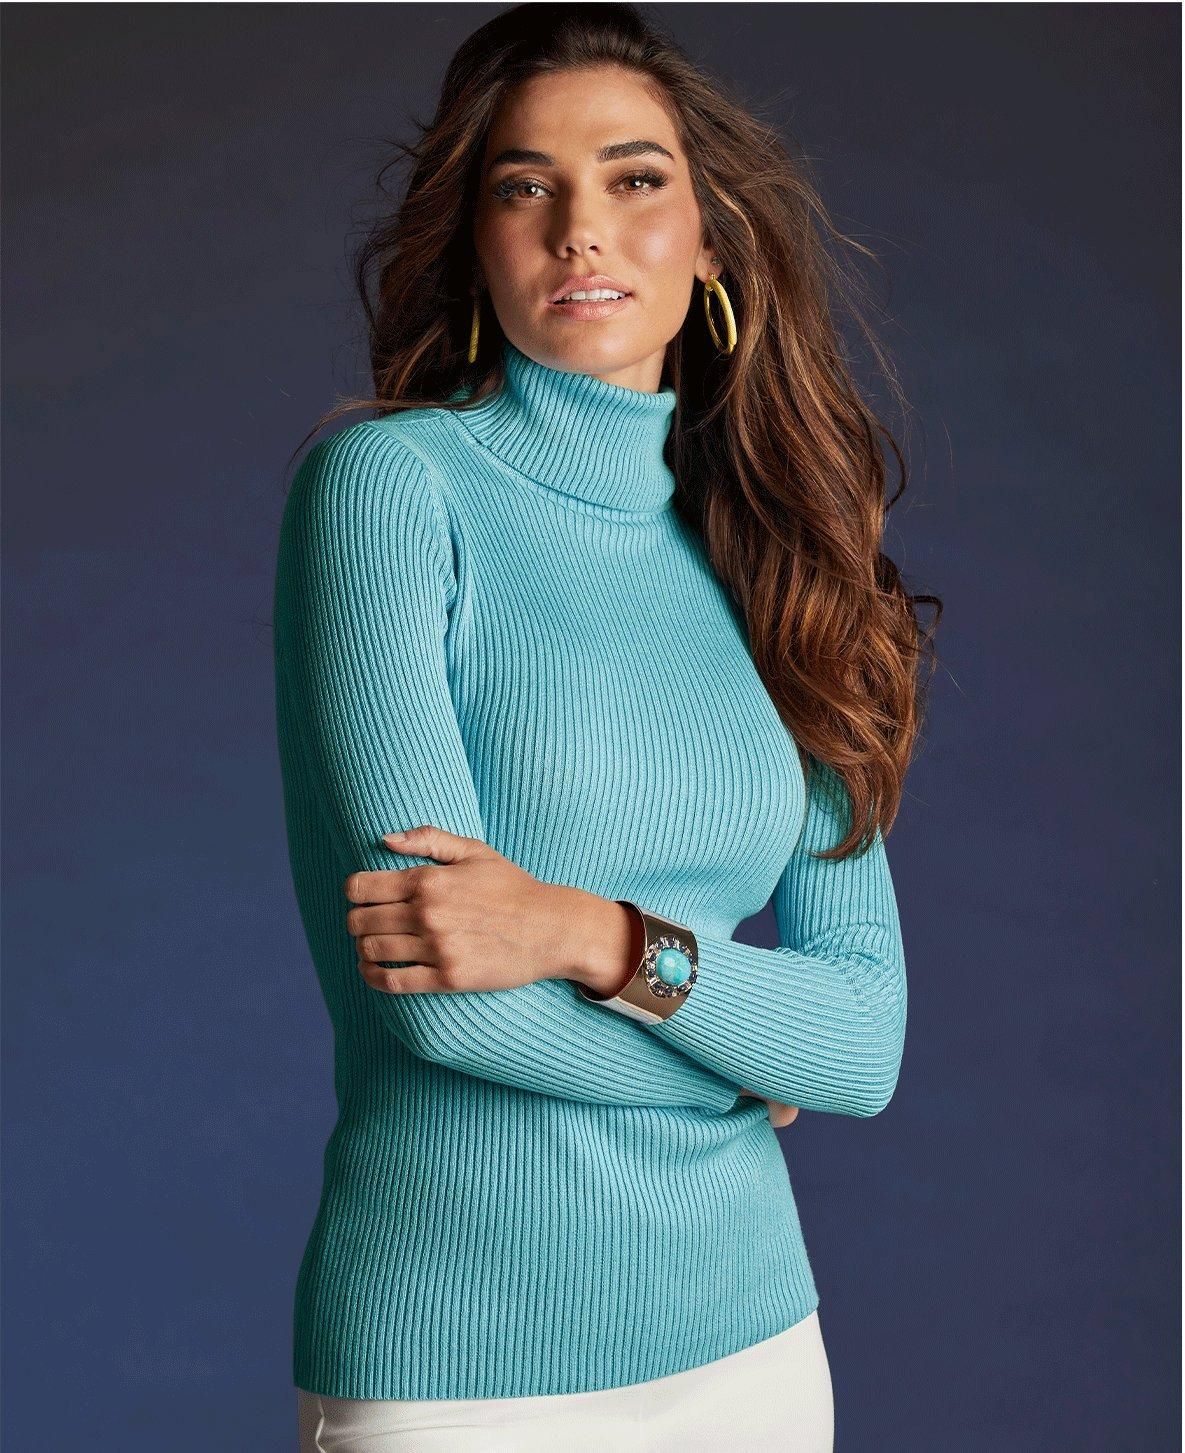 model wearing a light blue ribbed turtleneck sweater, gold hoop earrings, and white pants.